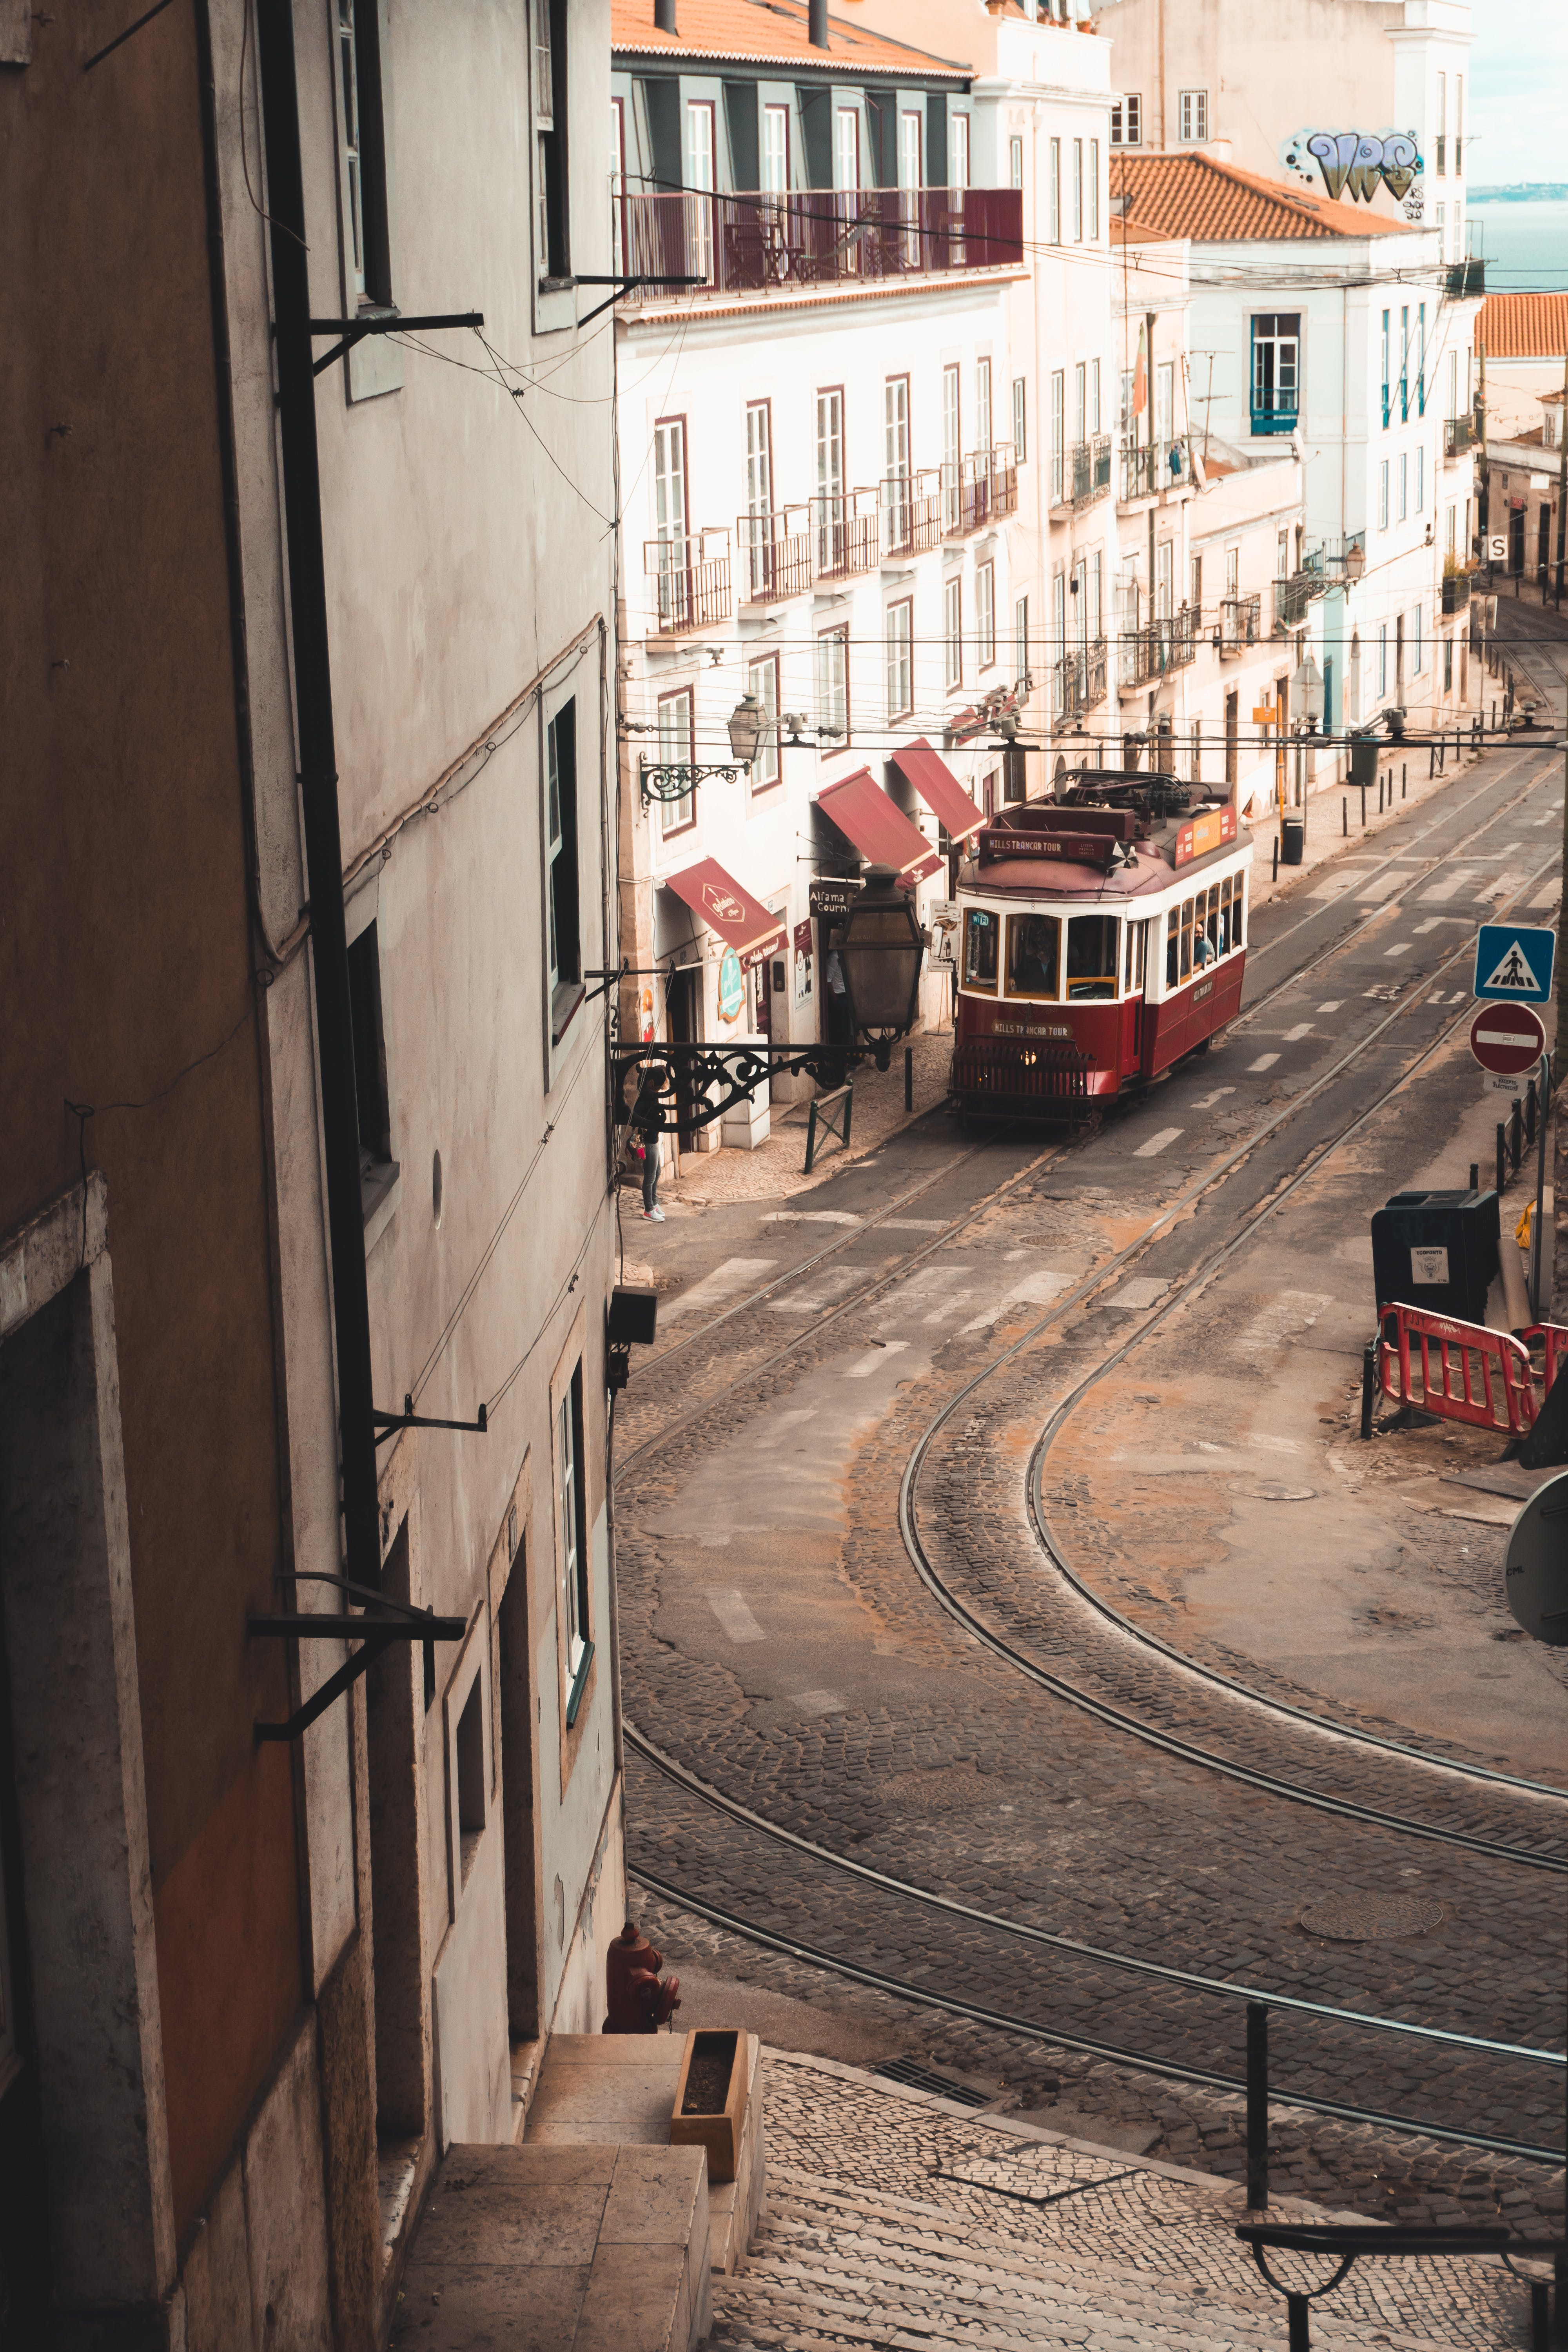 View of Tram on Street